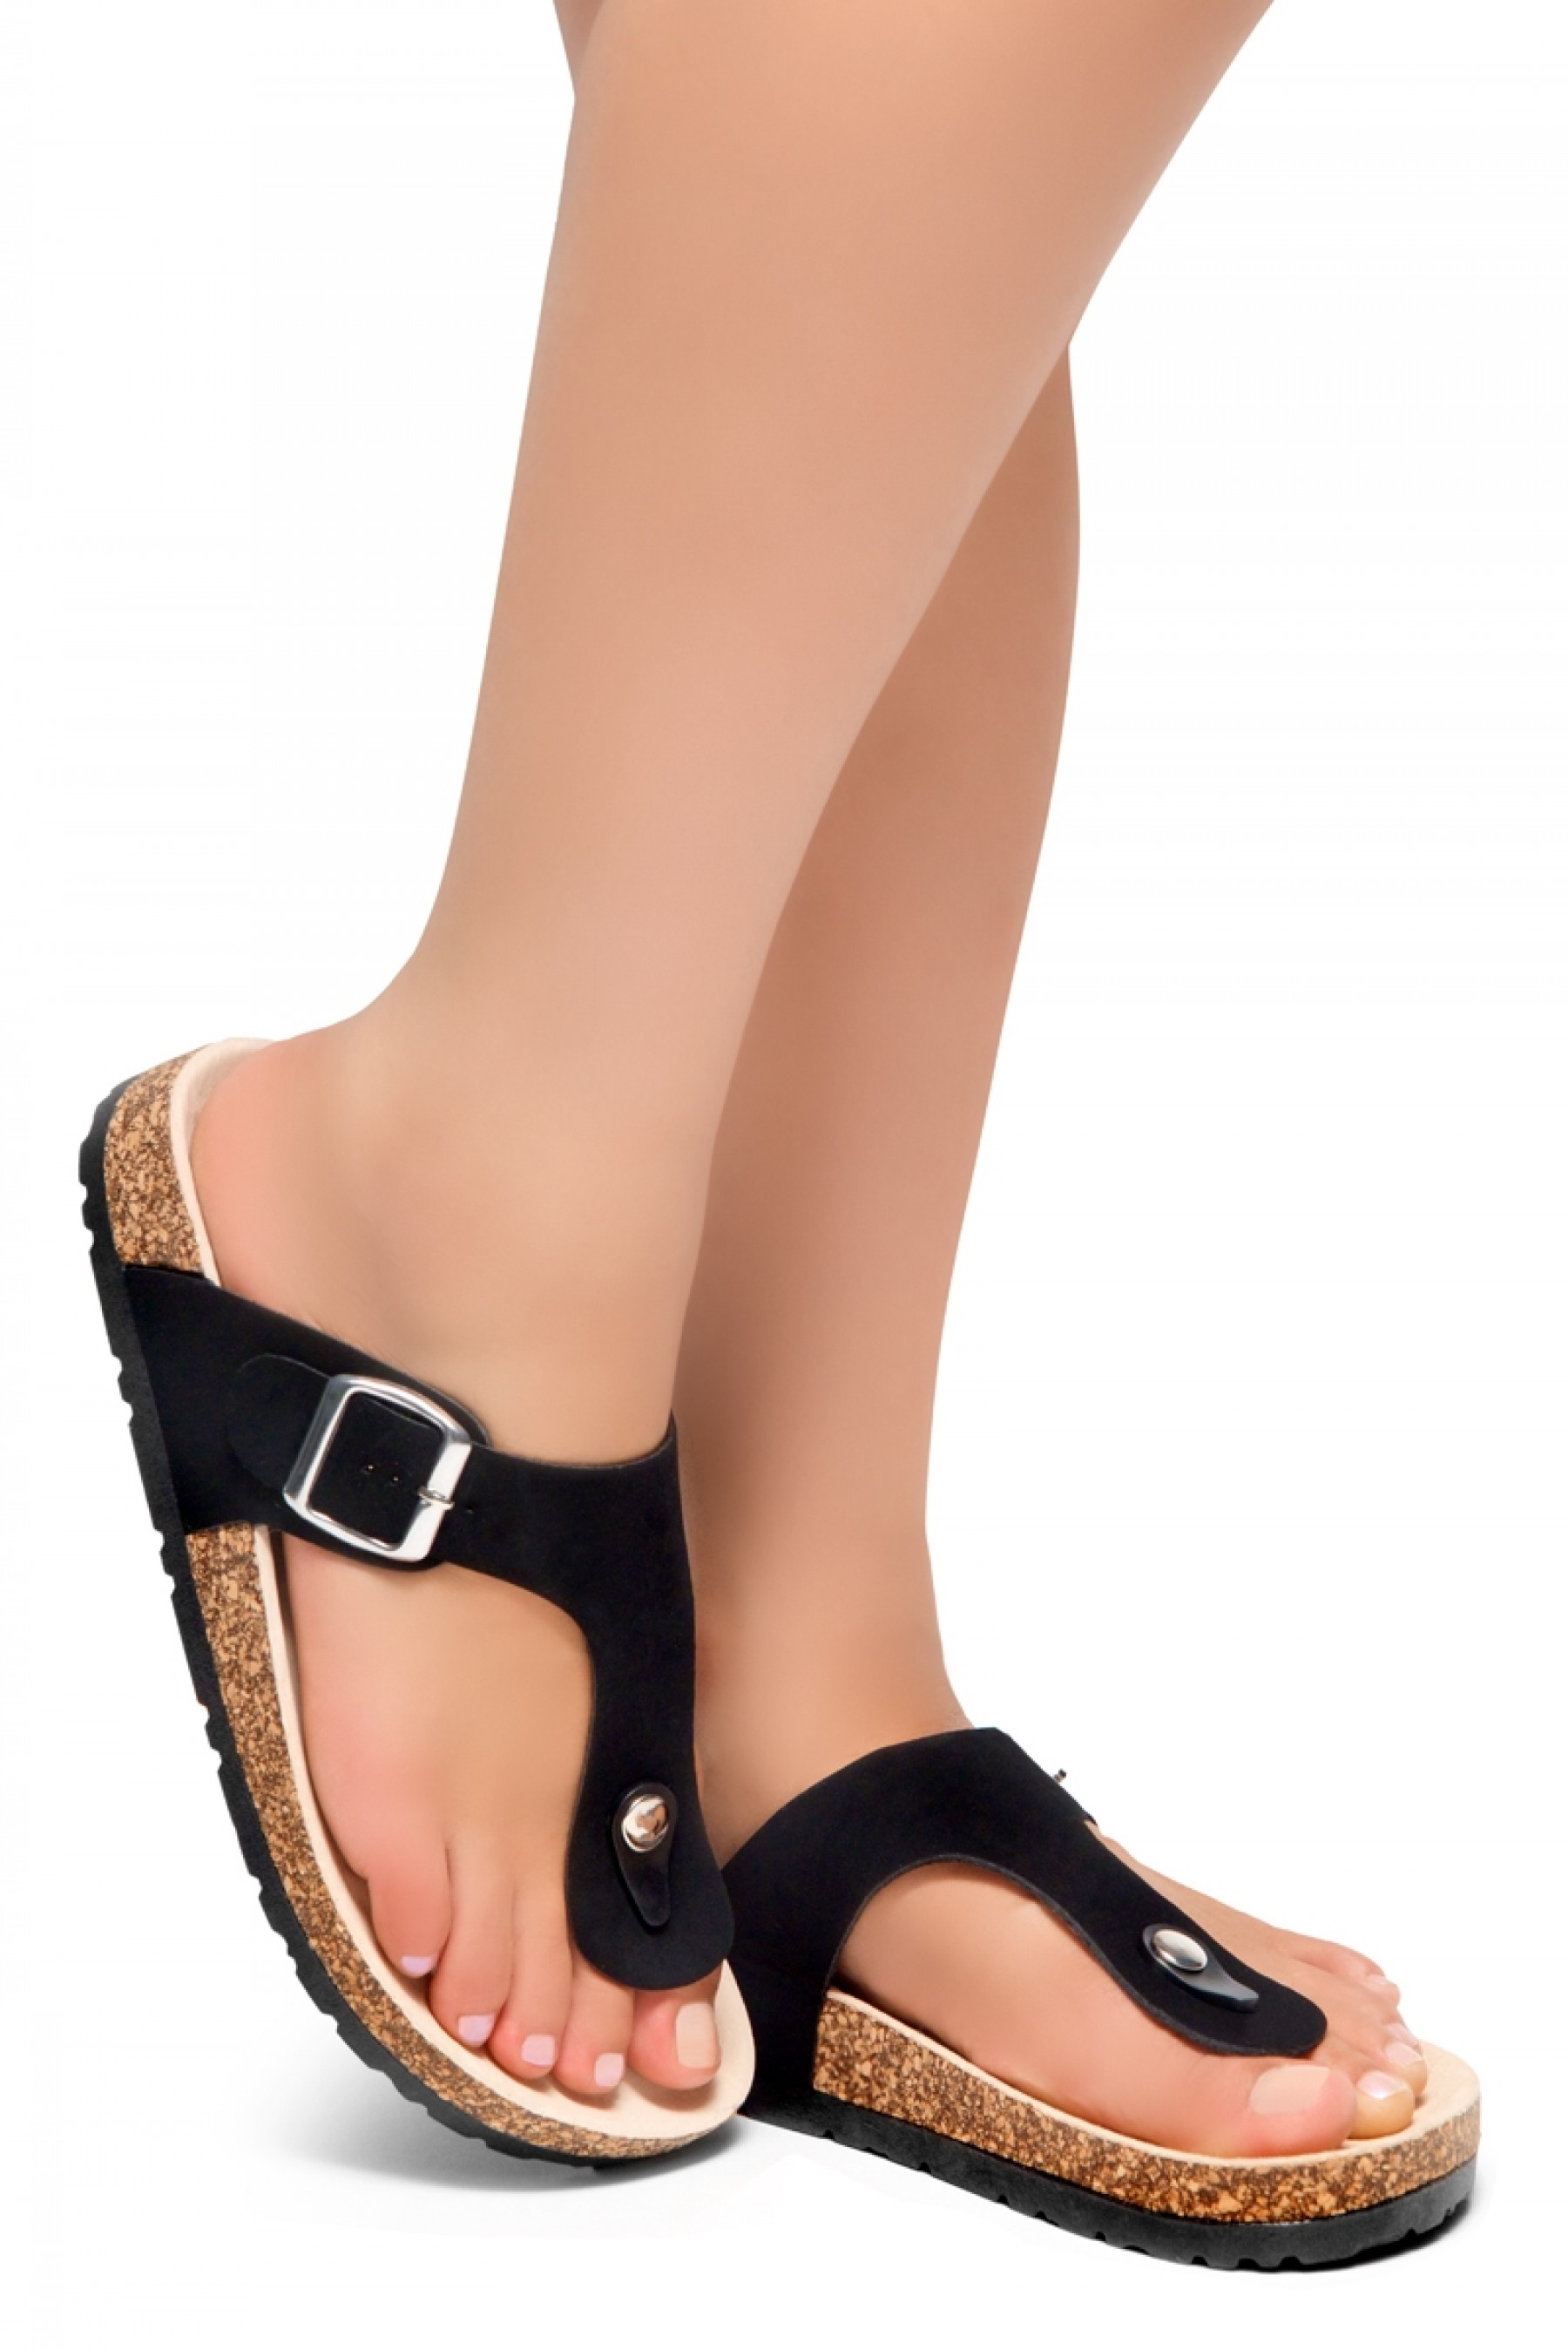 HerStyle SOFTEY-Open Toe Buckled Cork Slide Sandal(1896 BlackNU)